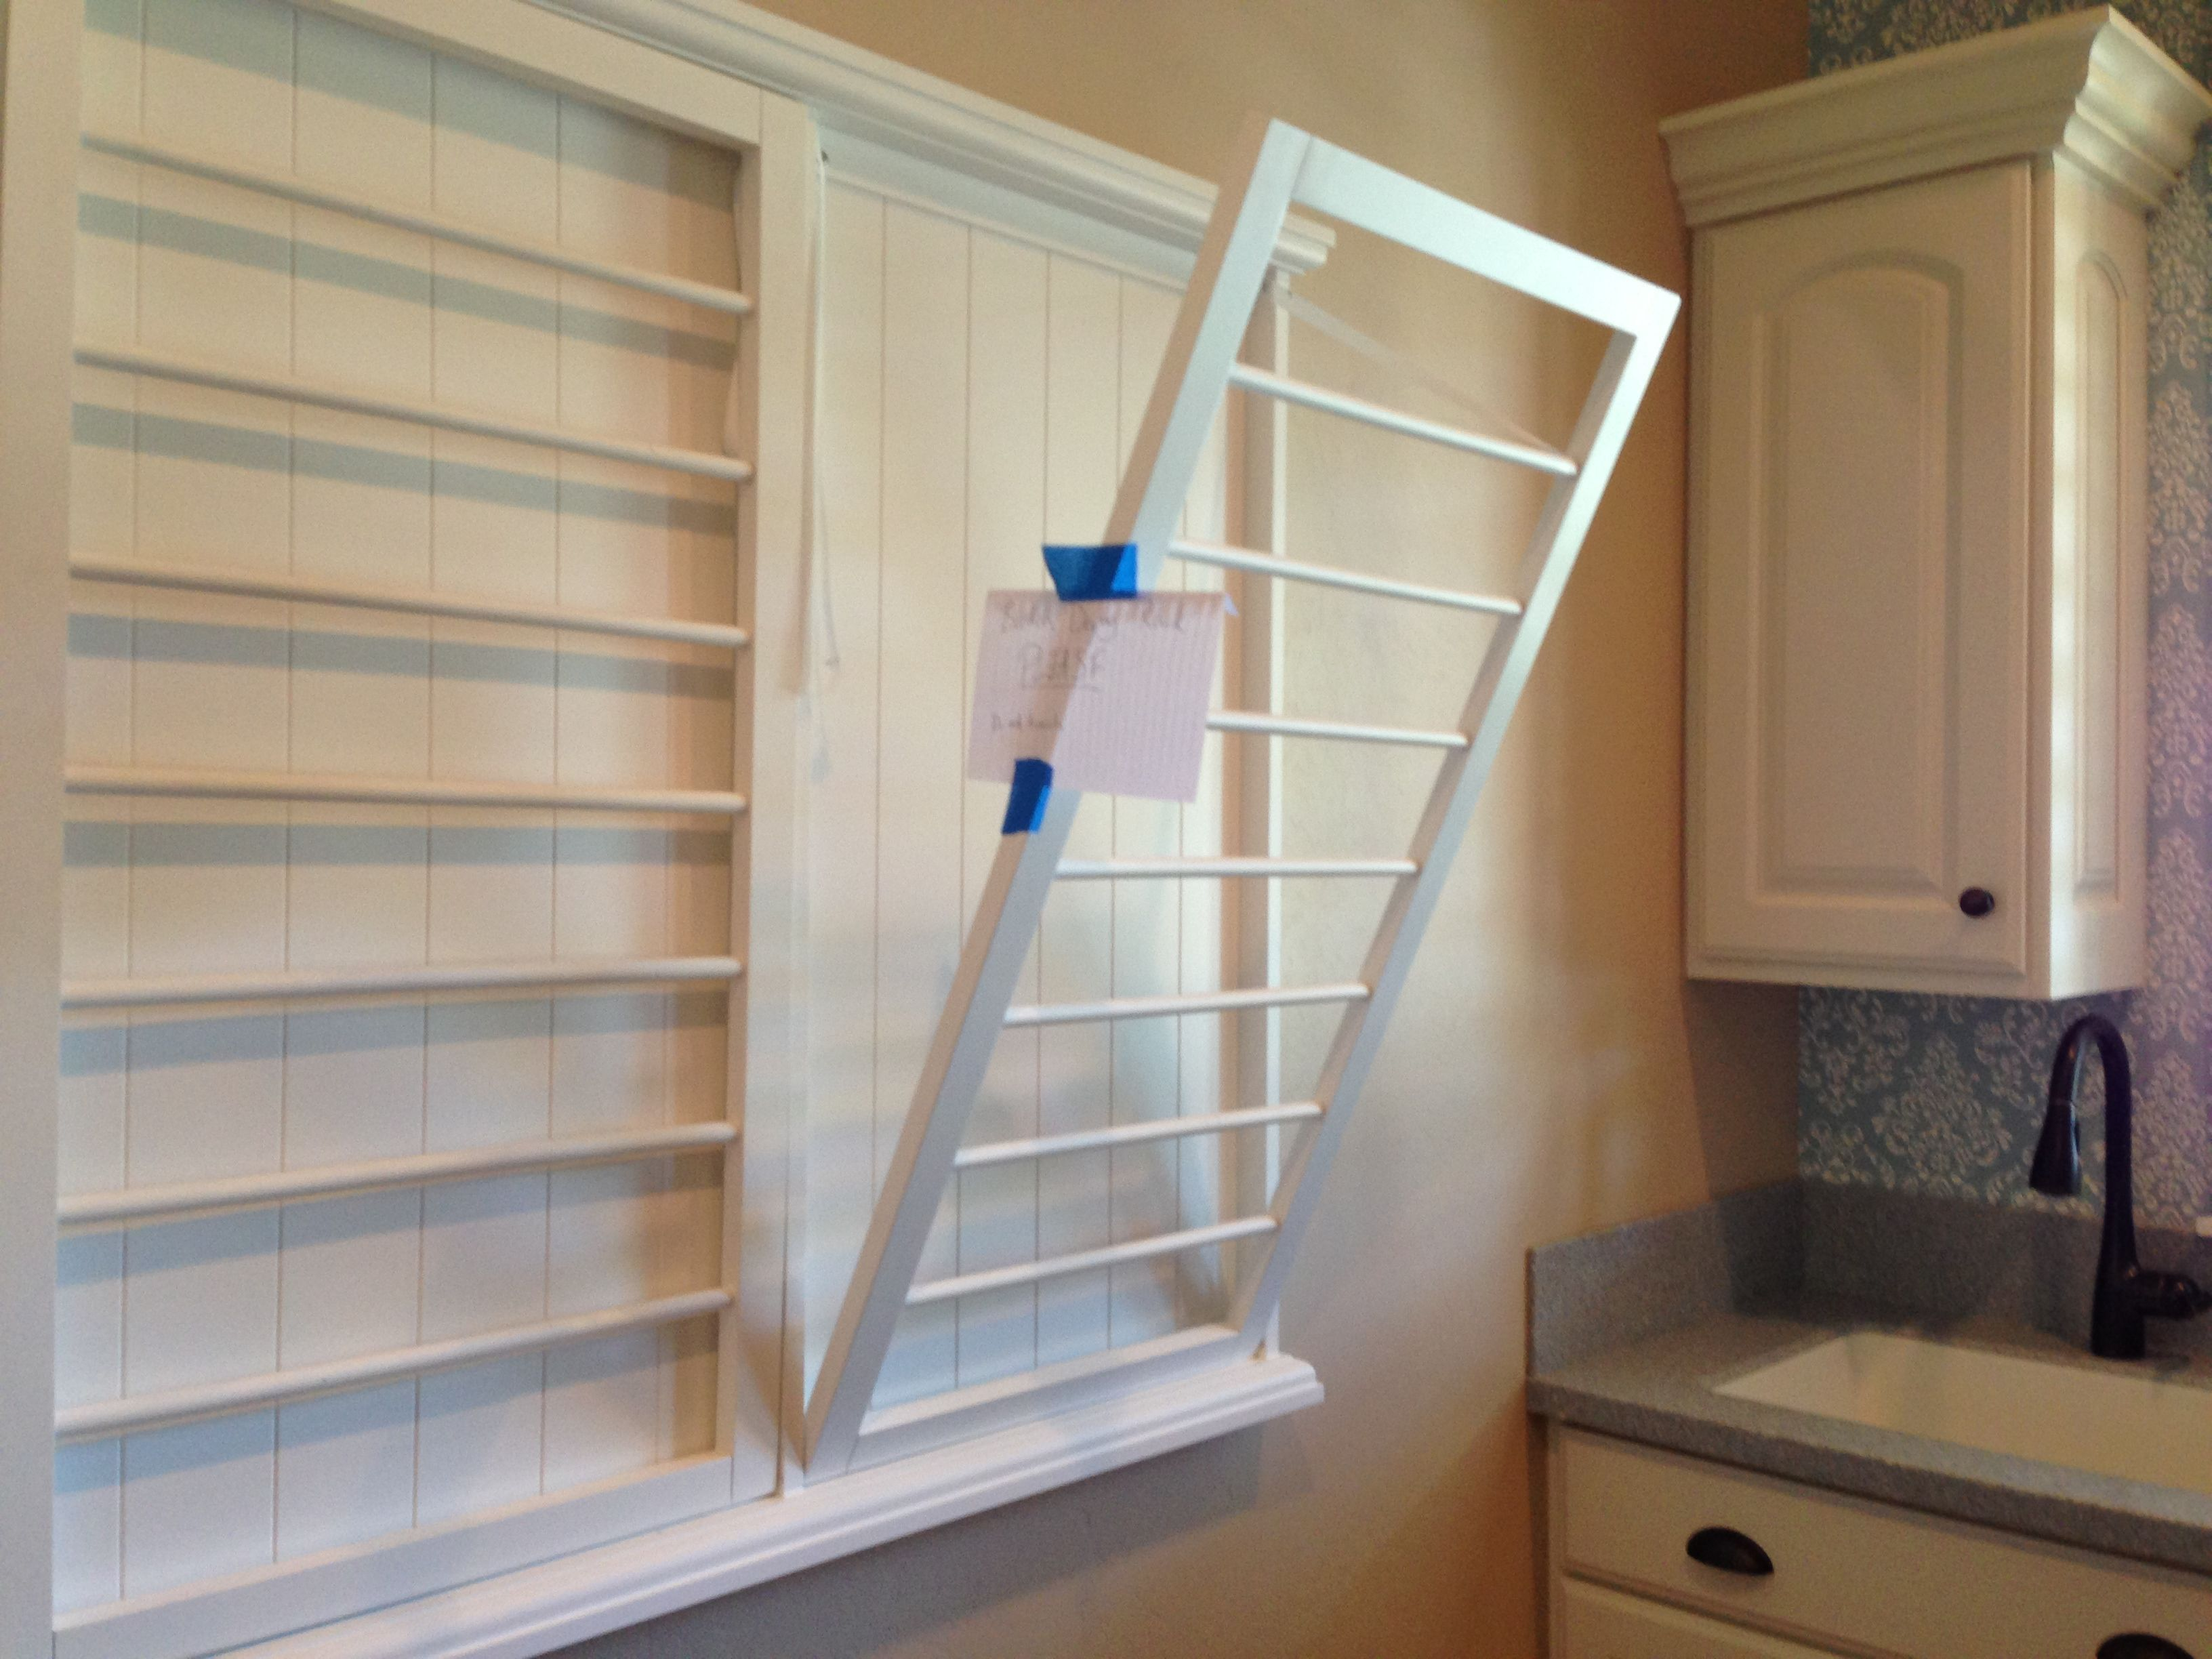 Laundry Room Drying Rack Idea Clothes Drying Racks Wood Clothes